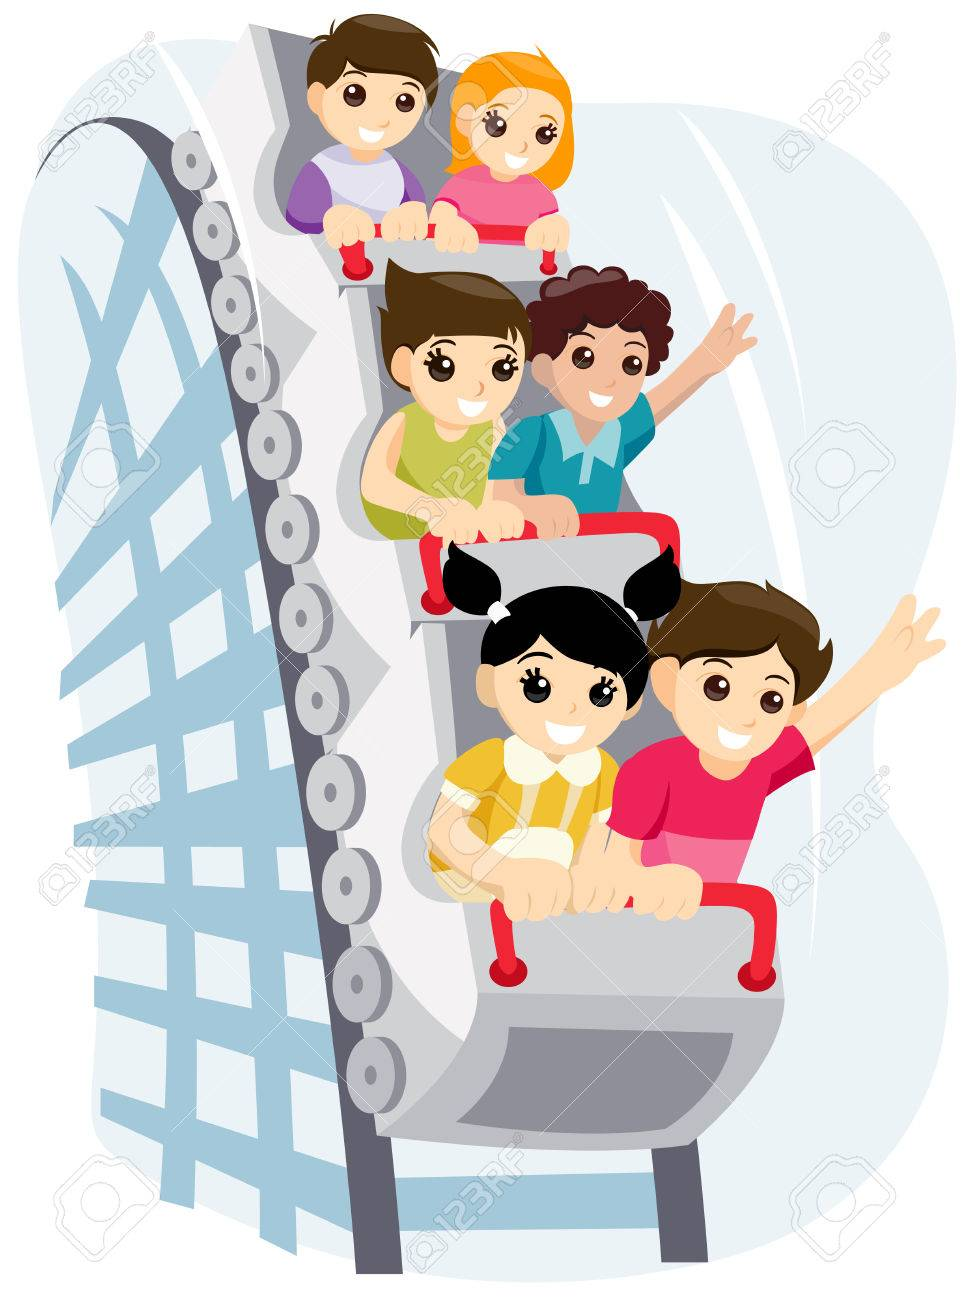 Children on Roller Coaster with Clipping Path Stock Vector - 3620209